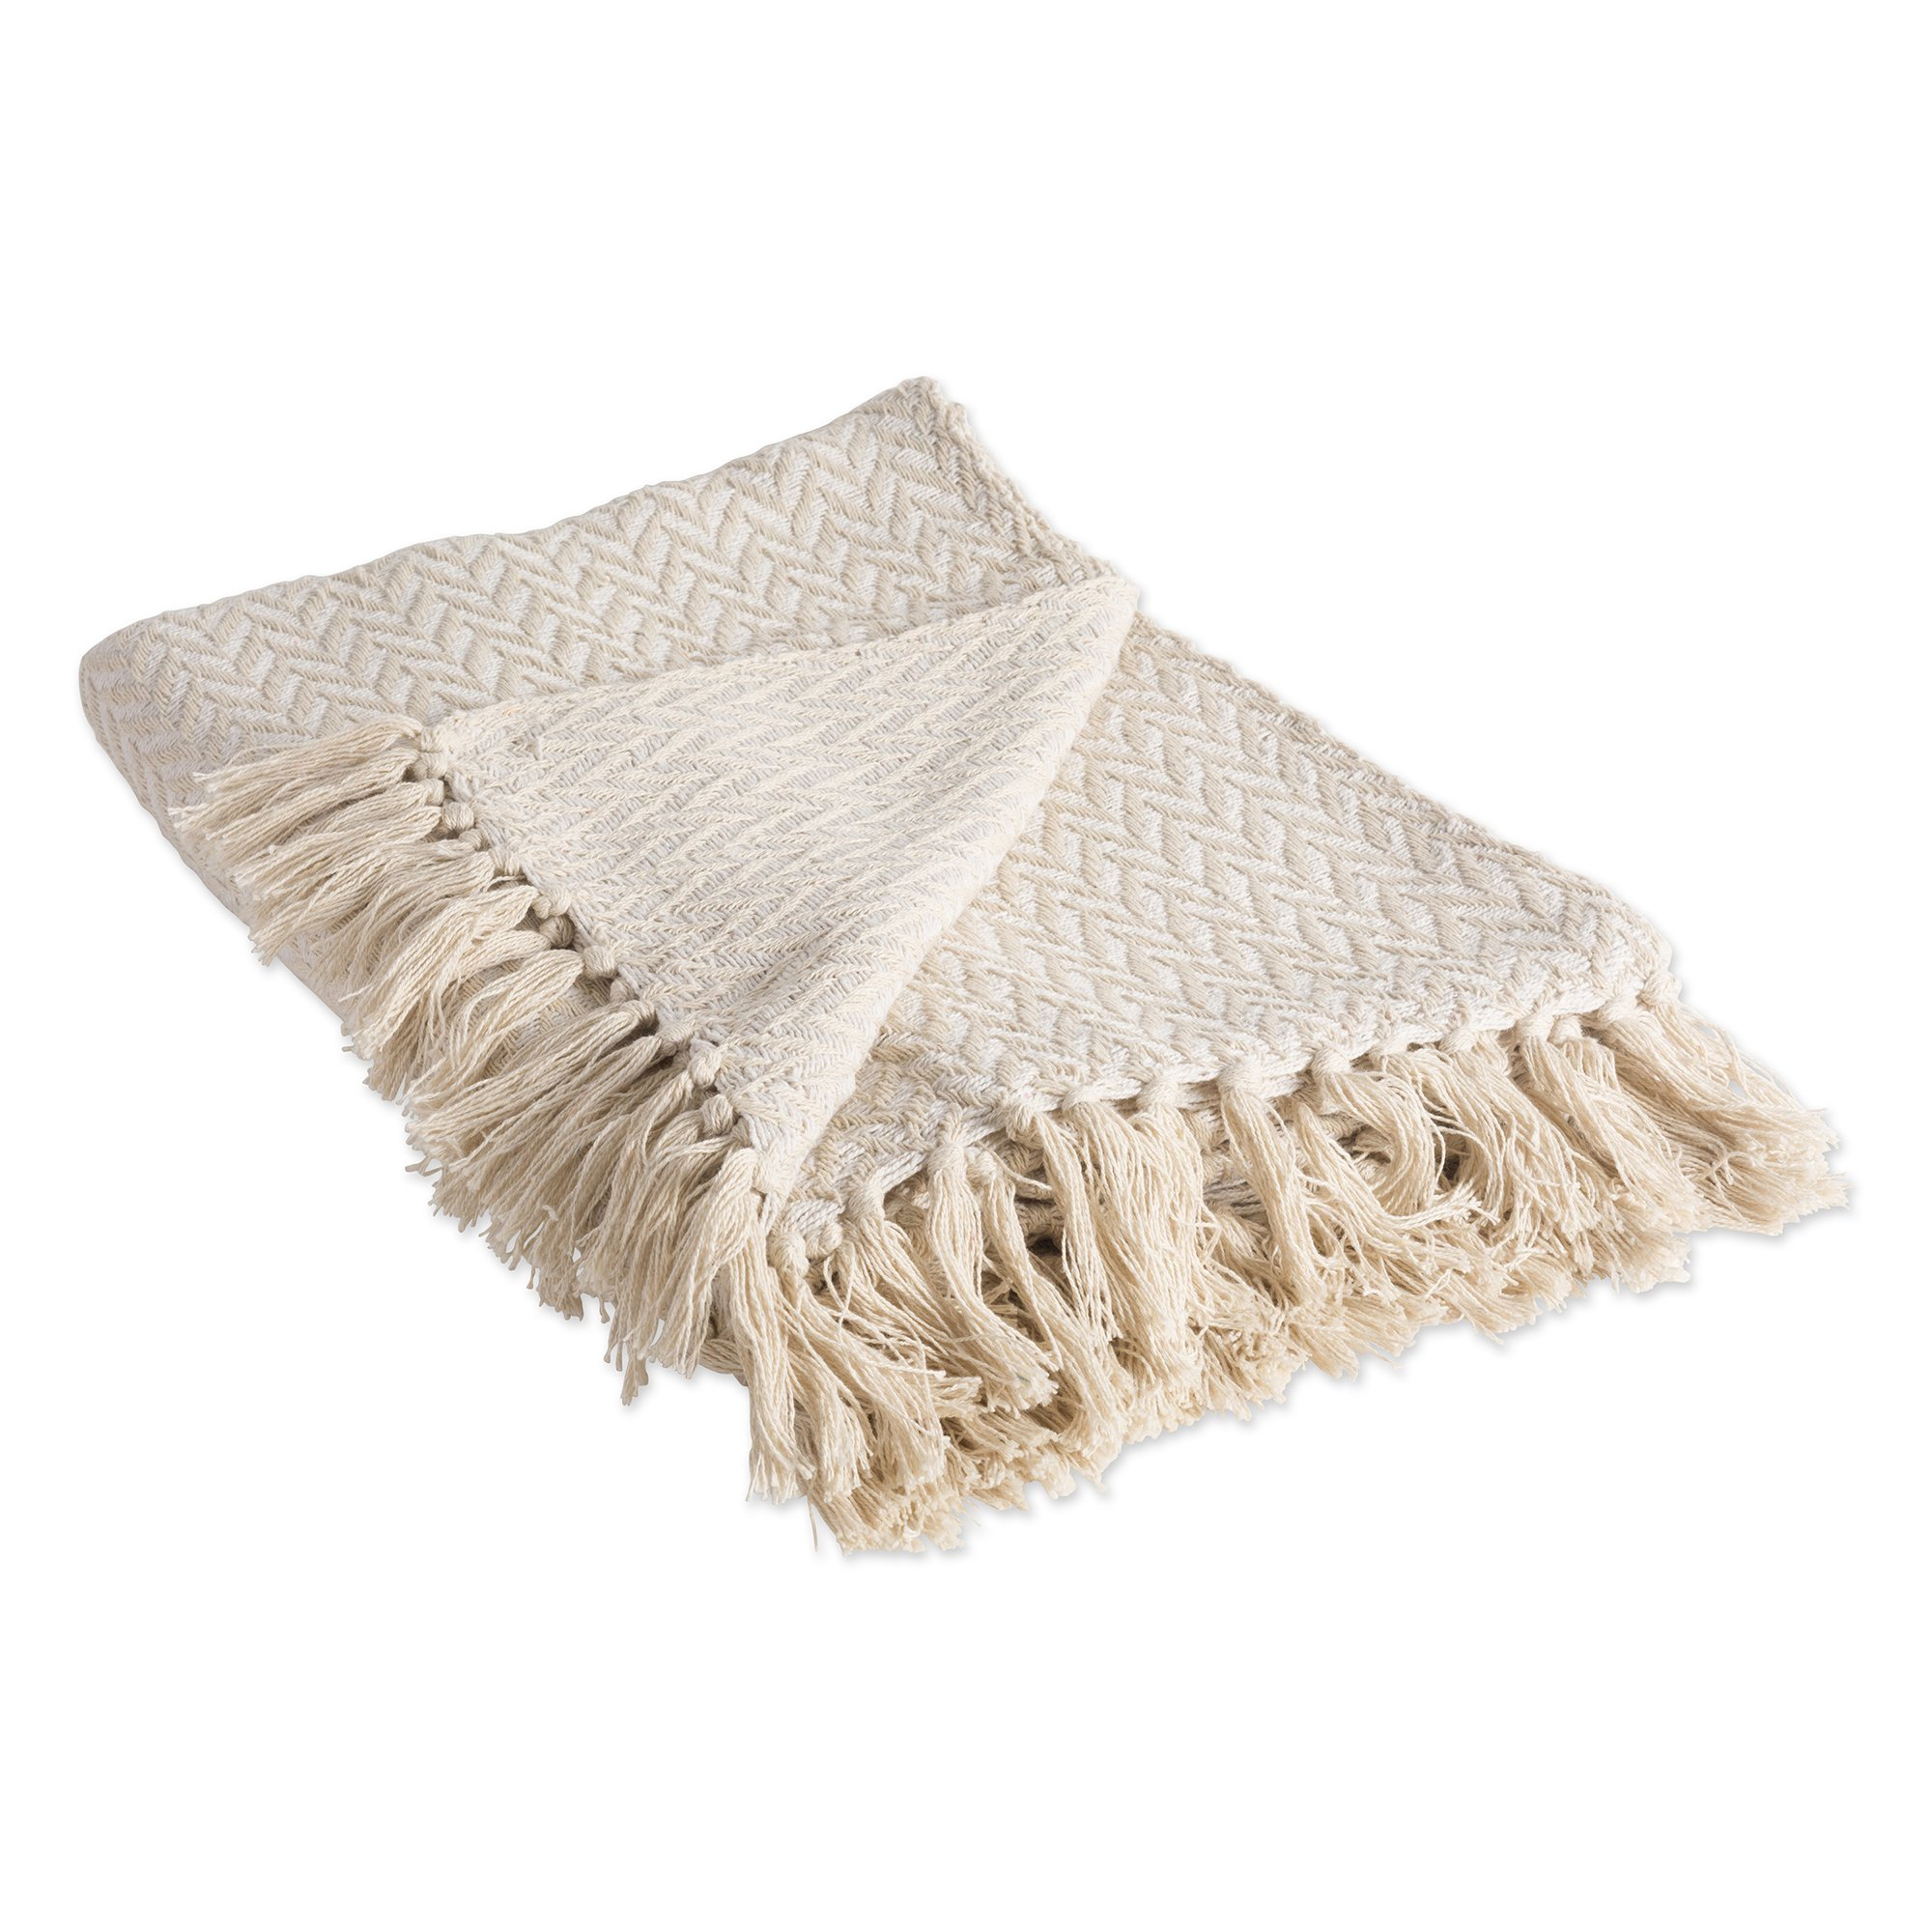 DII Rustic Farmhouse Cotton Zig-Zag Blanket Throw with Fringe For Chair, Couch, Picnic, Camping, Beach, & Everyday Use , 50 x 60'' - Natural